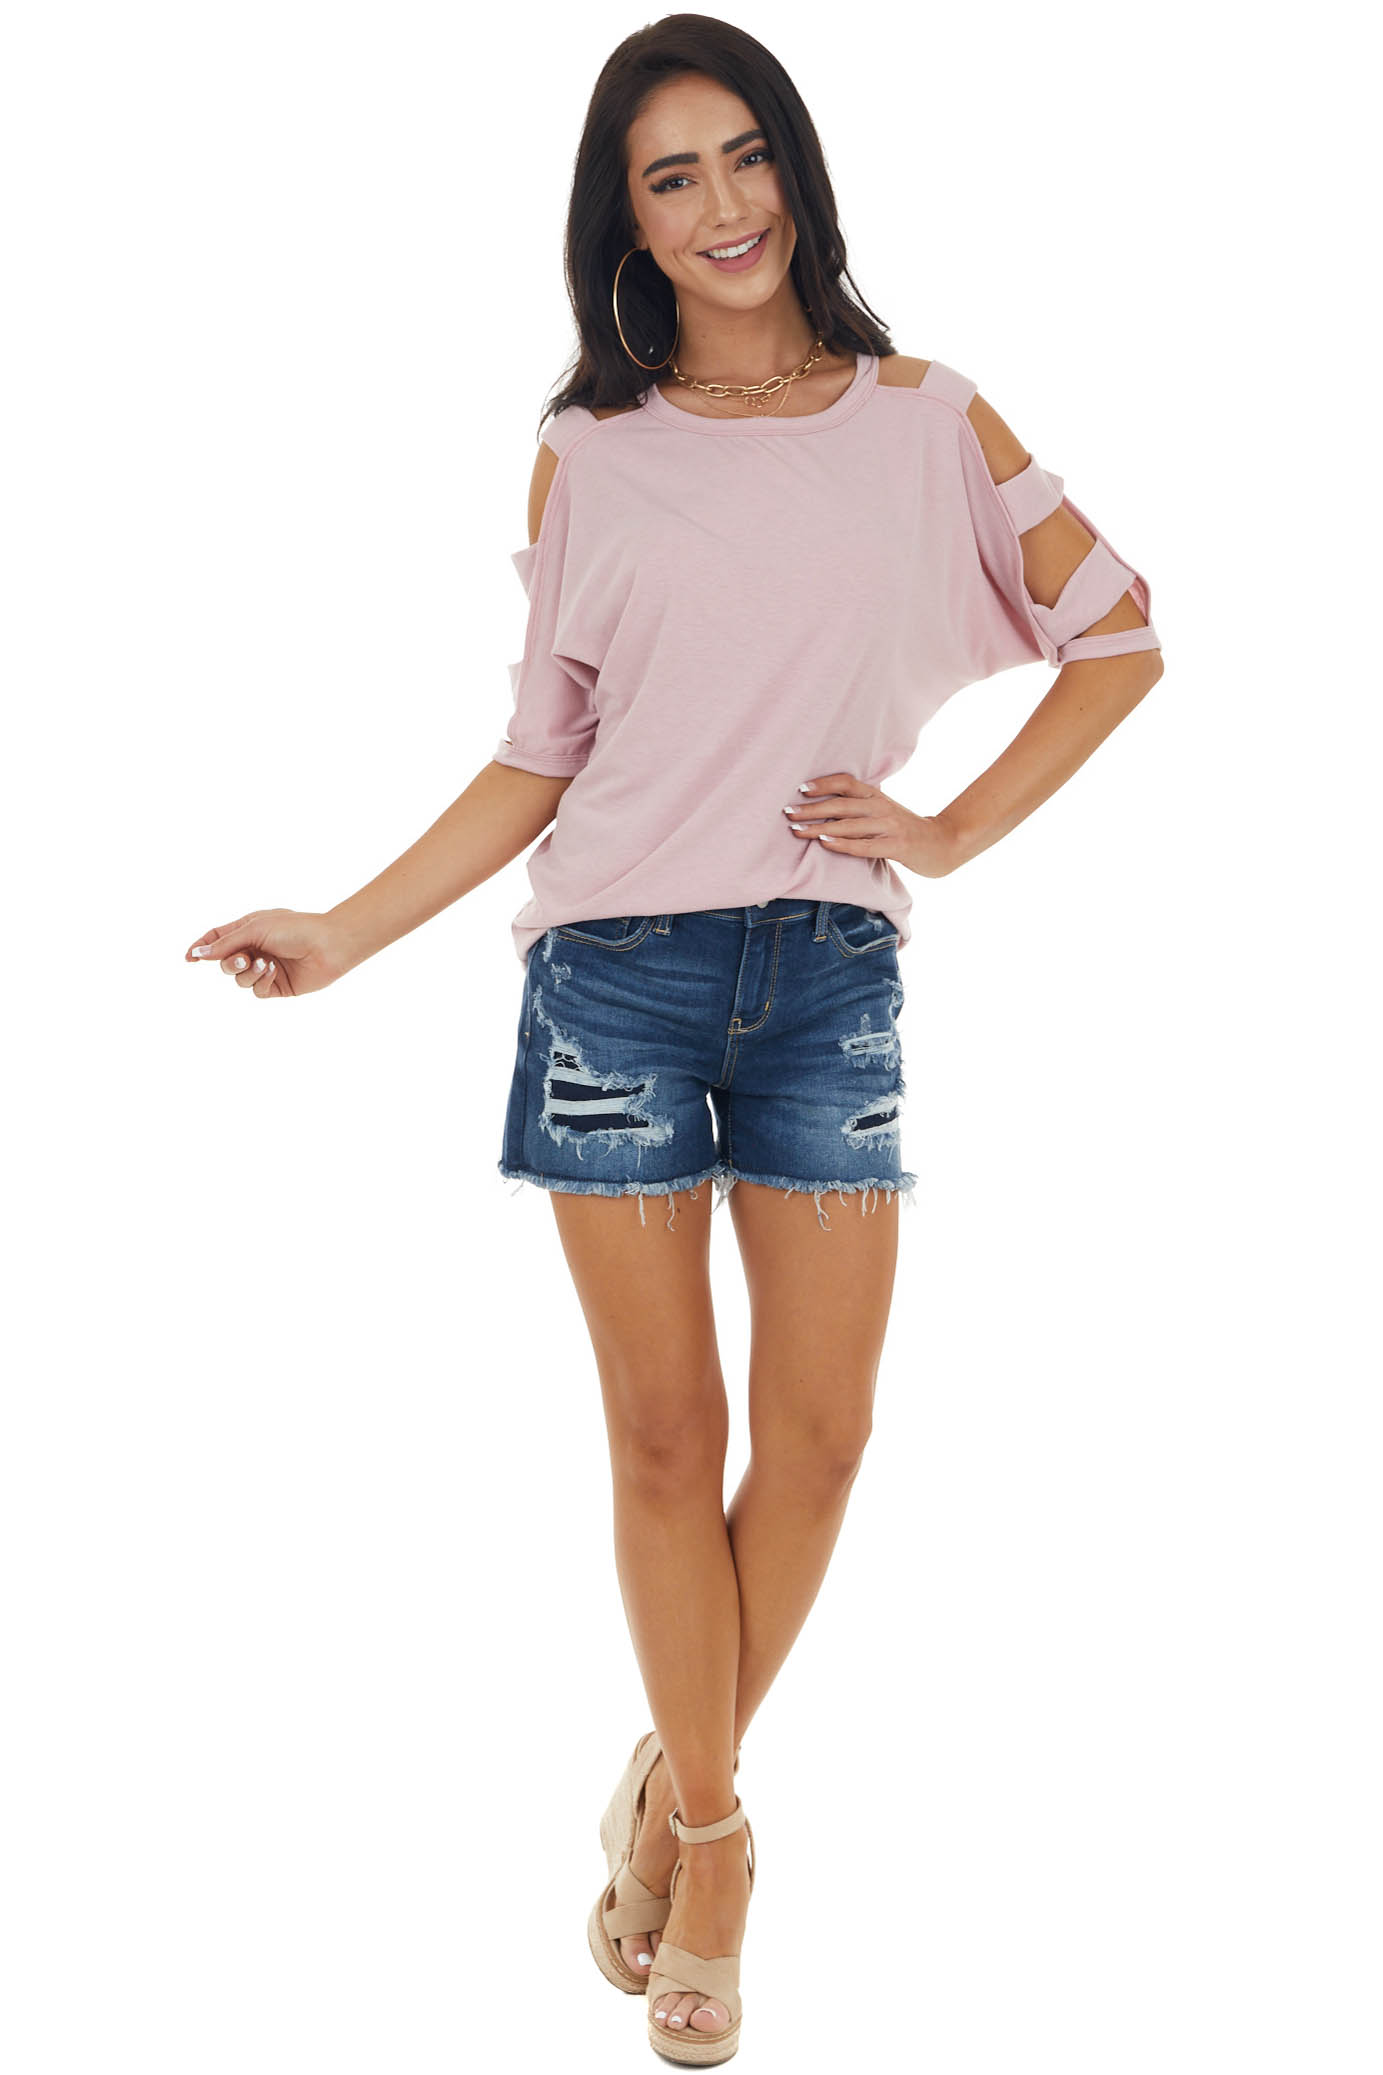 Dusty Blush Knit Top with Ladder Cut Out Half Length Sleeves